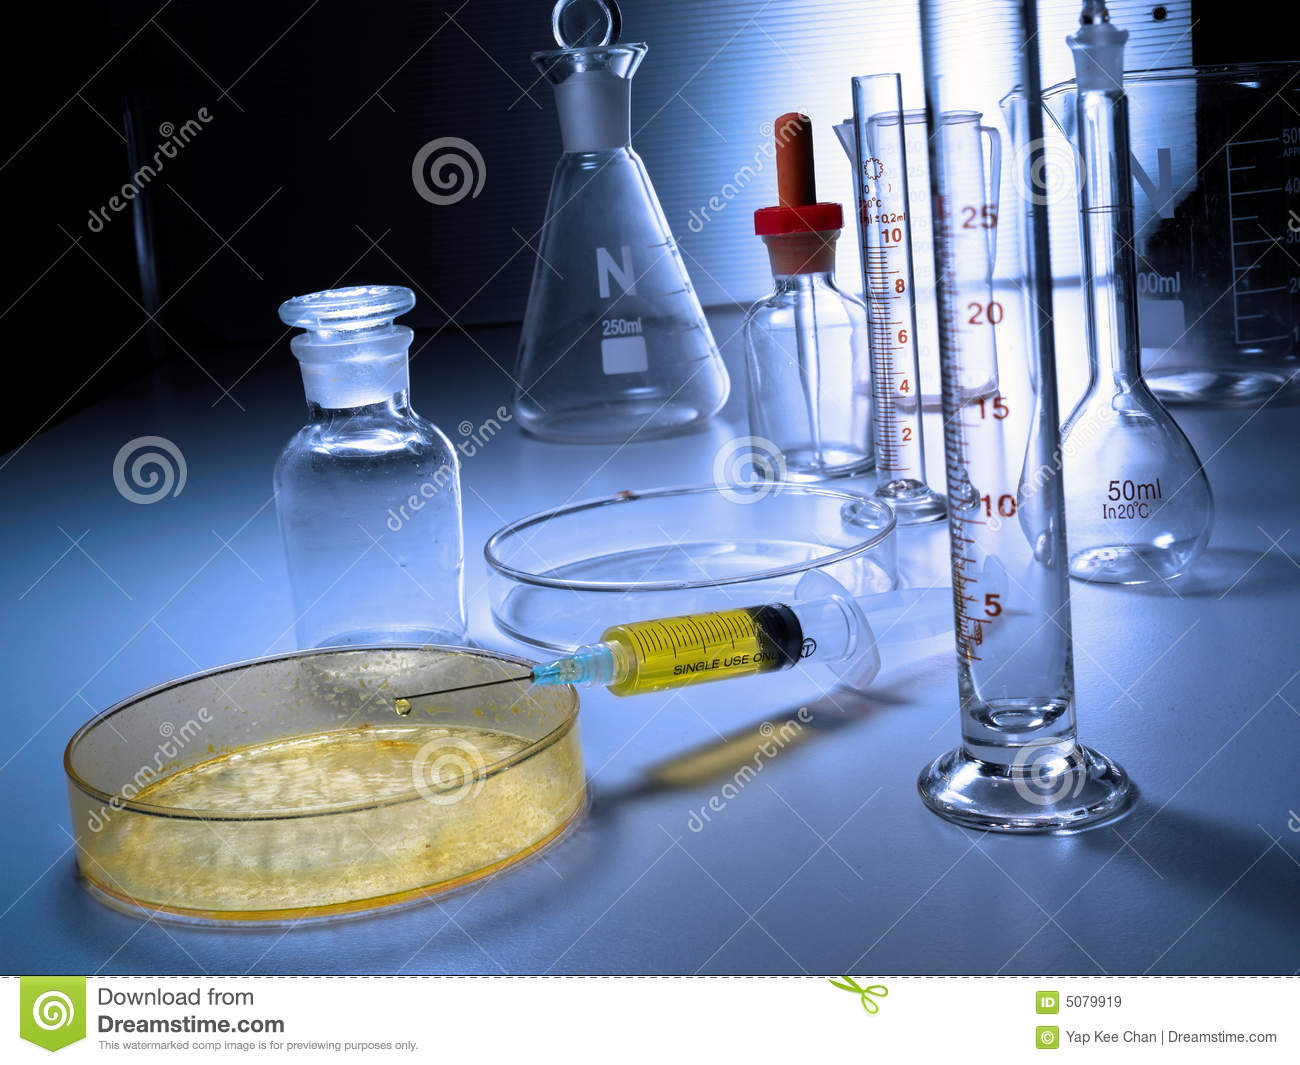 handling laboratory and chemical apparatus essay The place where various kinds of scientific apparatus and equipments are arranged in systematic manner is called science laboratory science laboratory is central to scientific instructions and it forms essential component of science education.